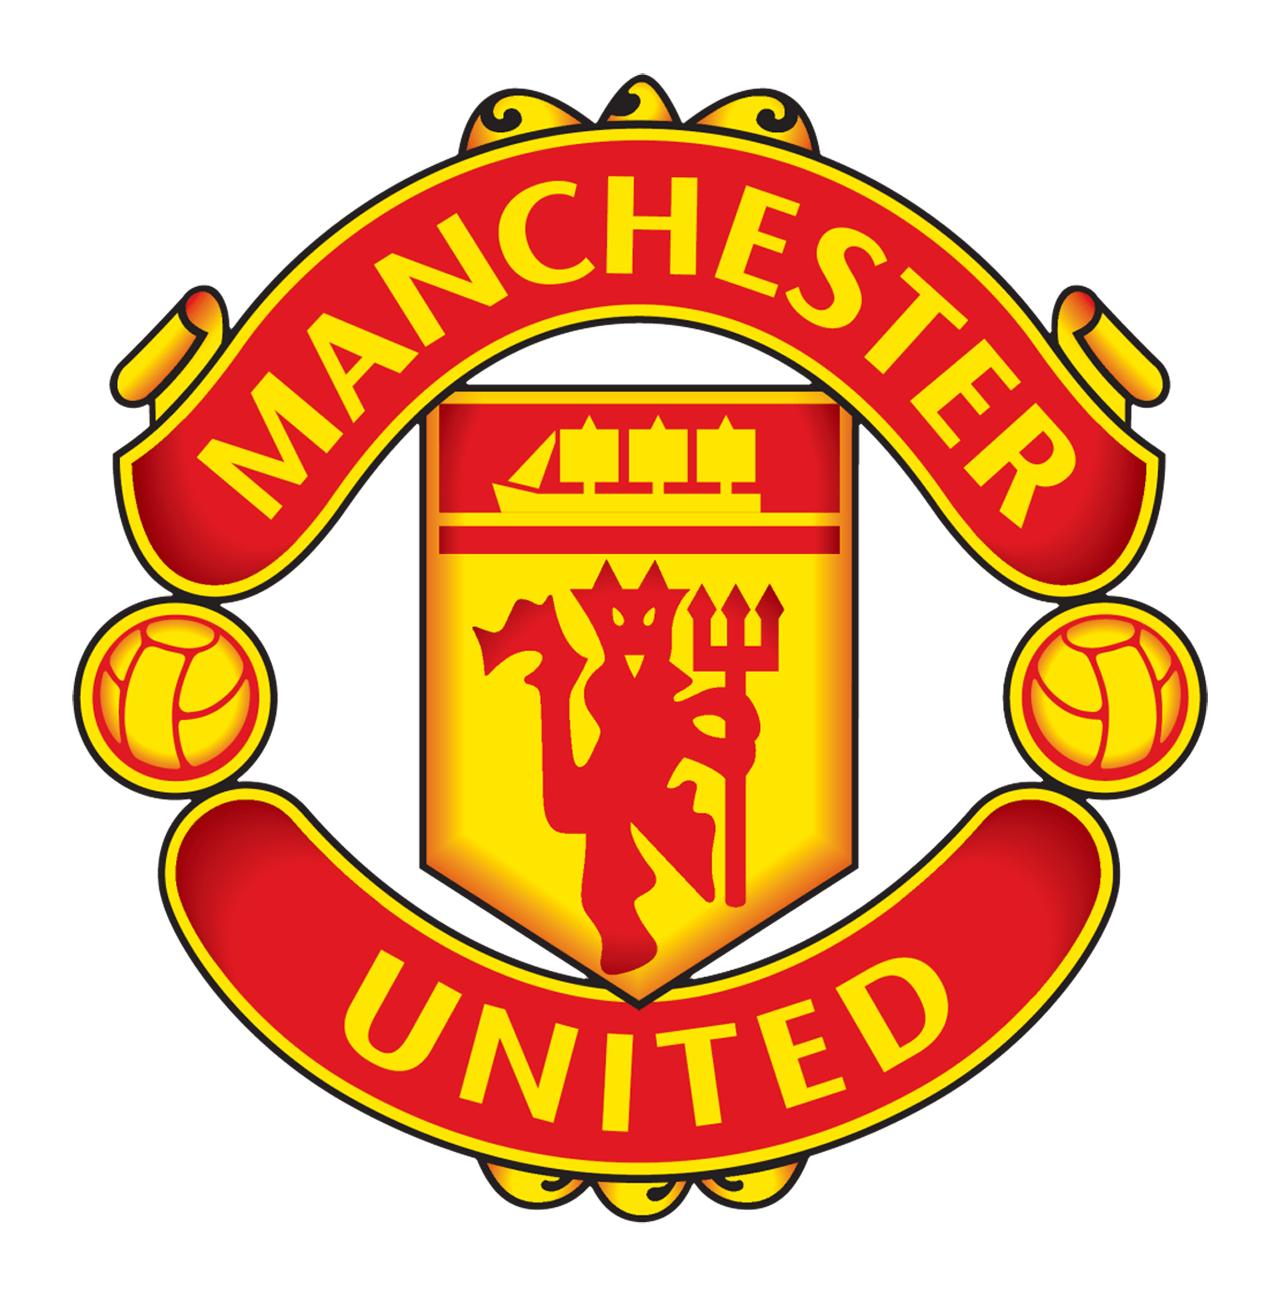 Manchester united logo transparent. Crest png clear background svg freeuse